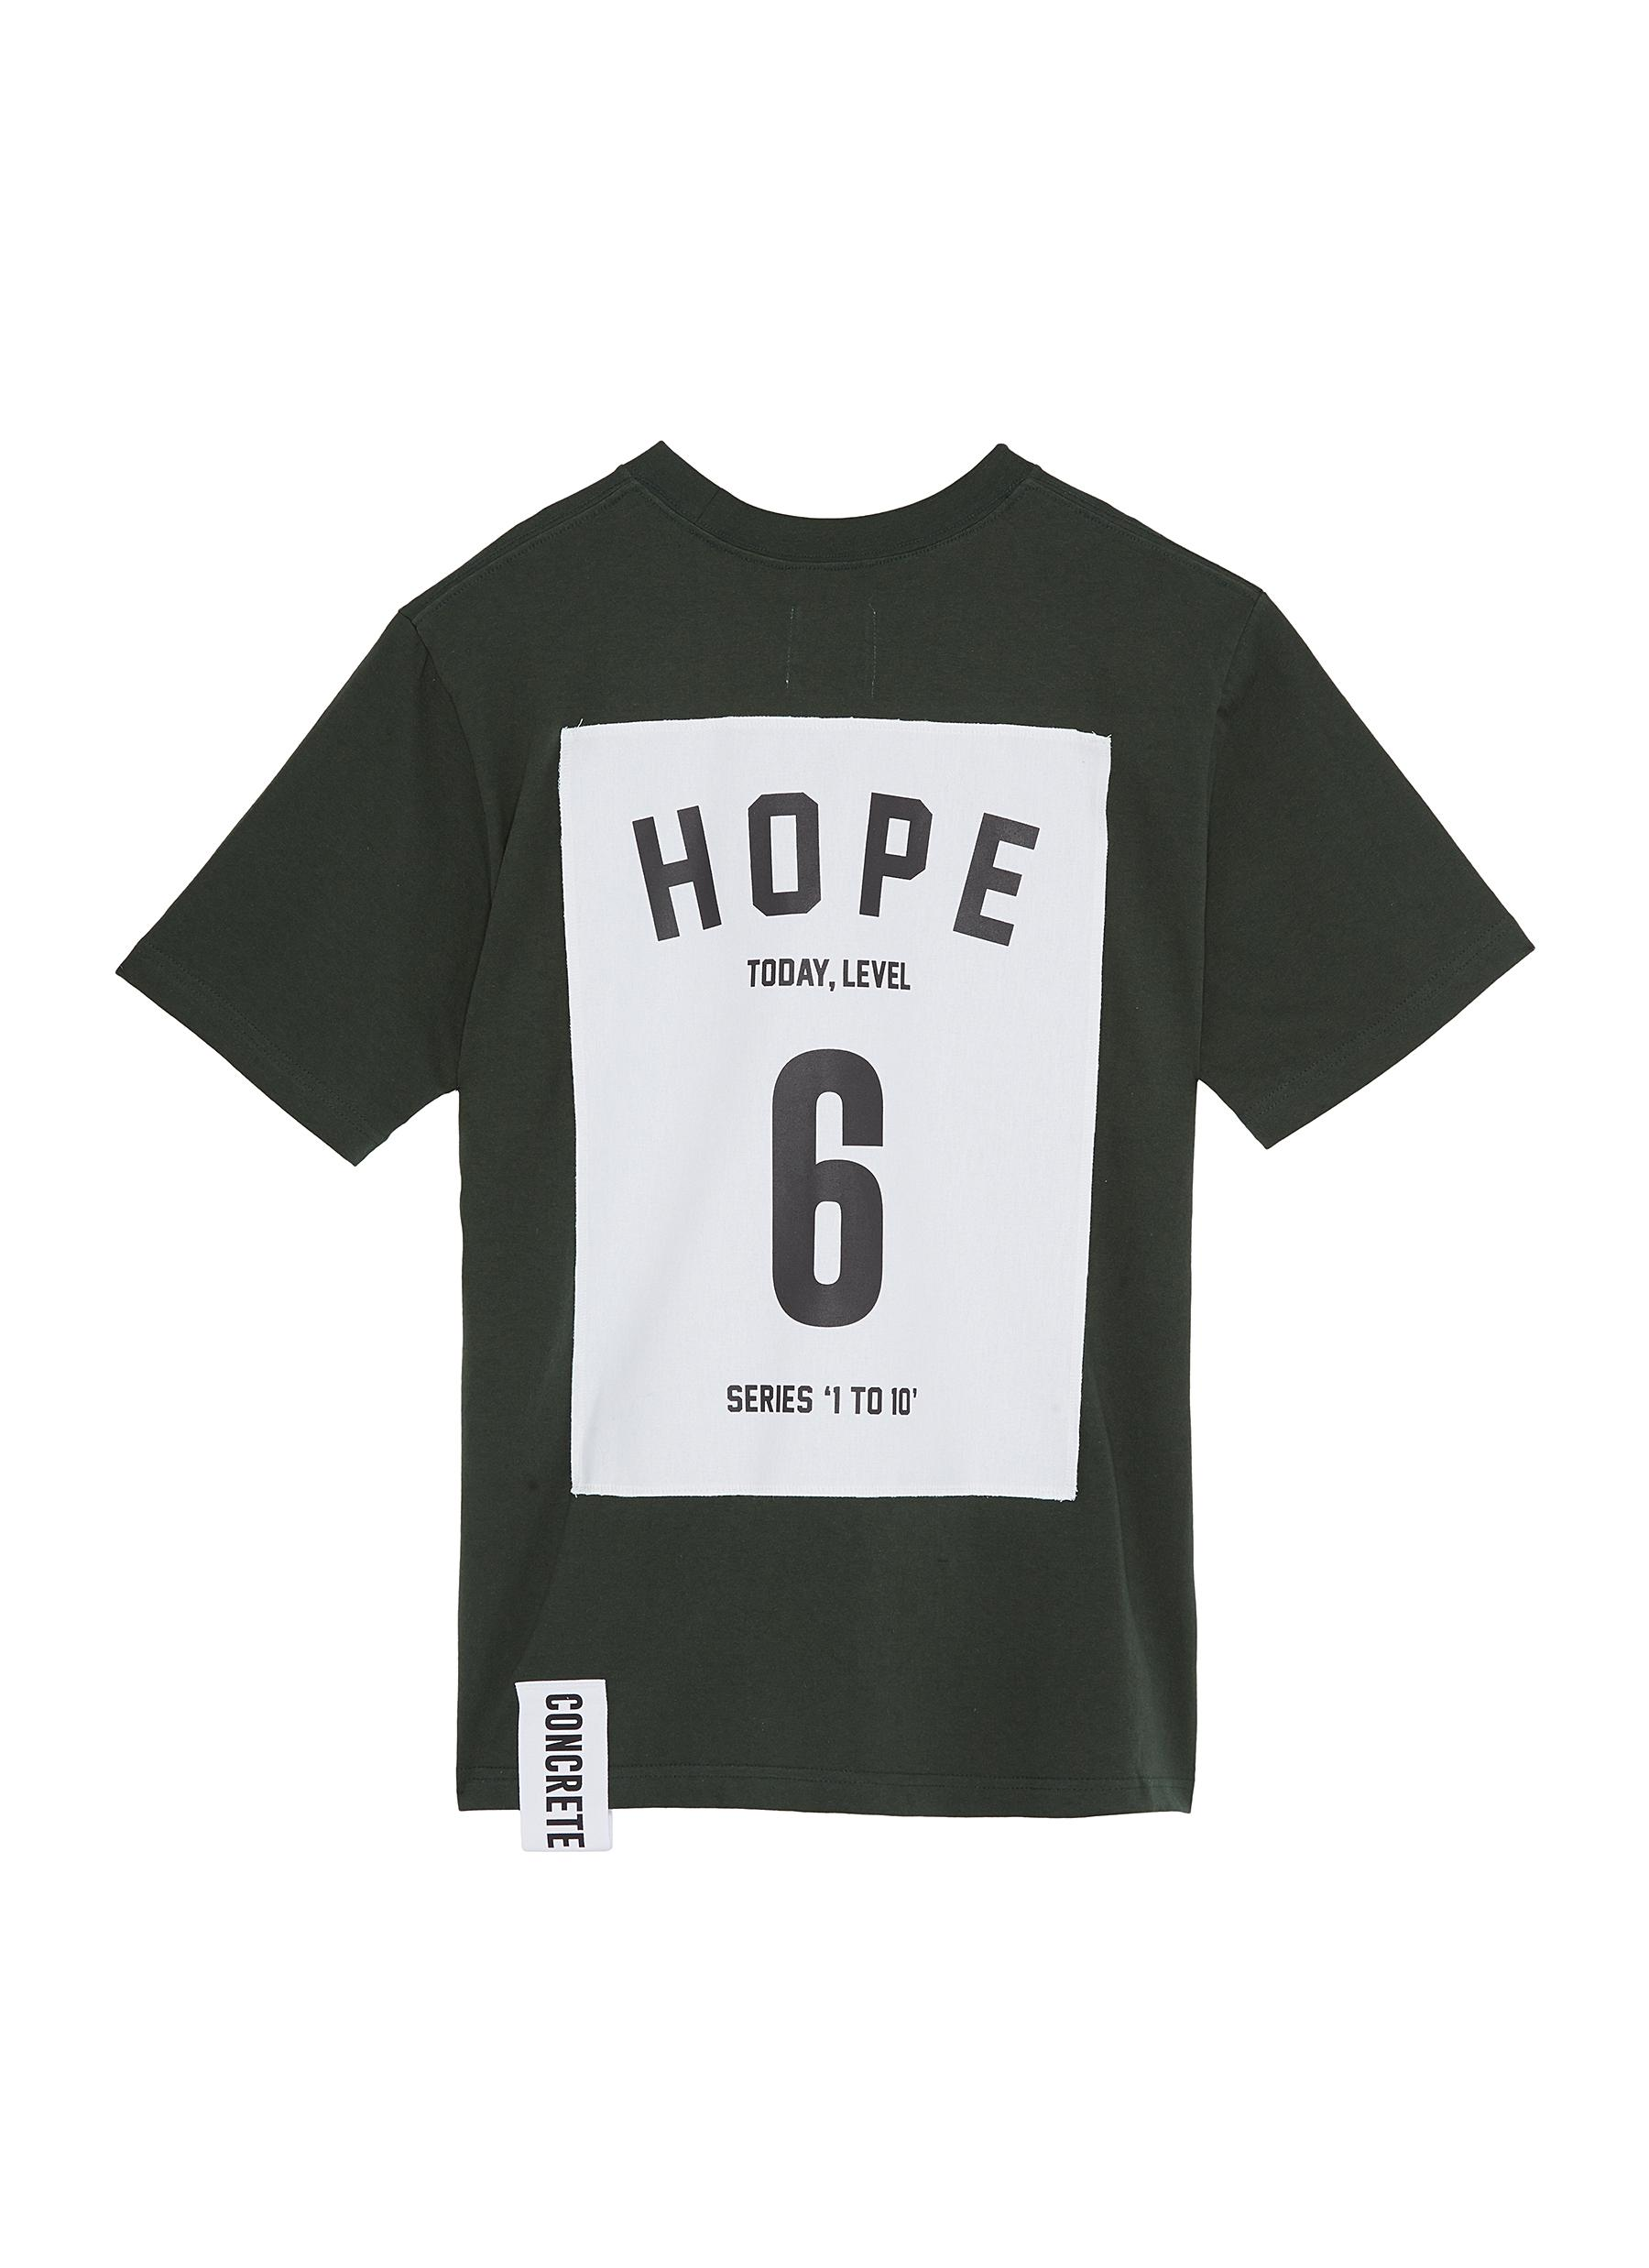 Series 1 to 10 oversized unisex T-shirt – 6 Hope by Studio Concrete